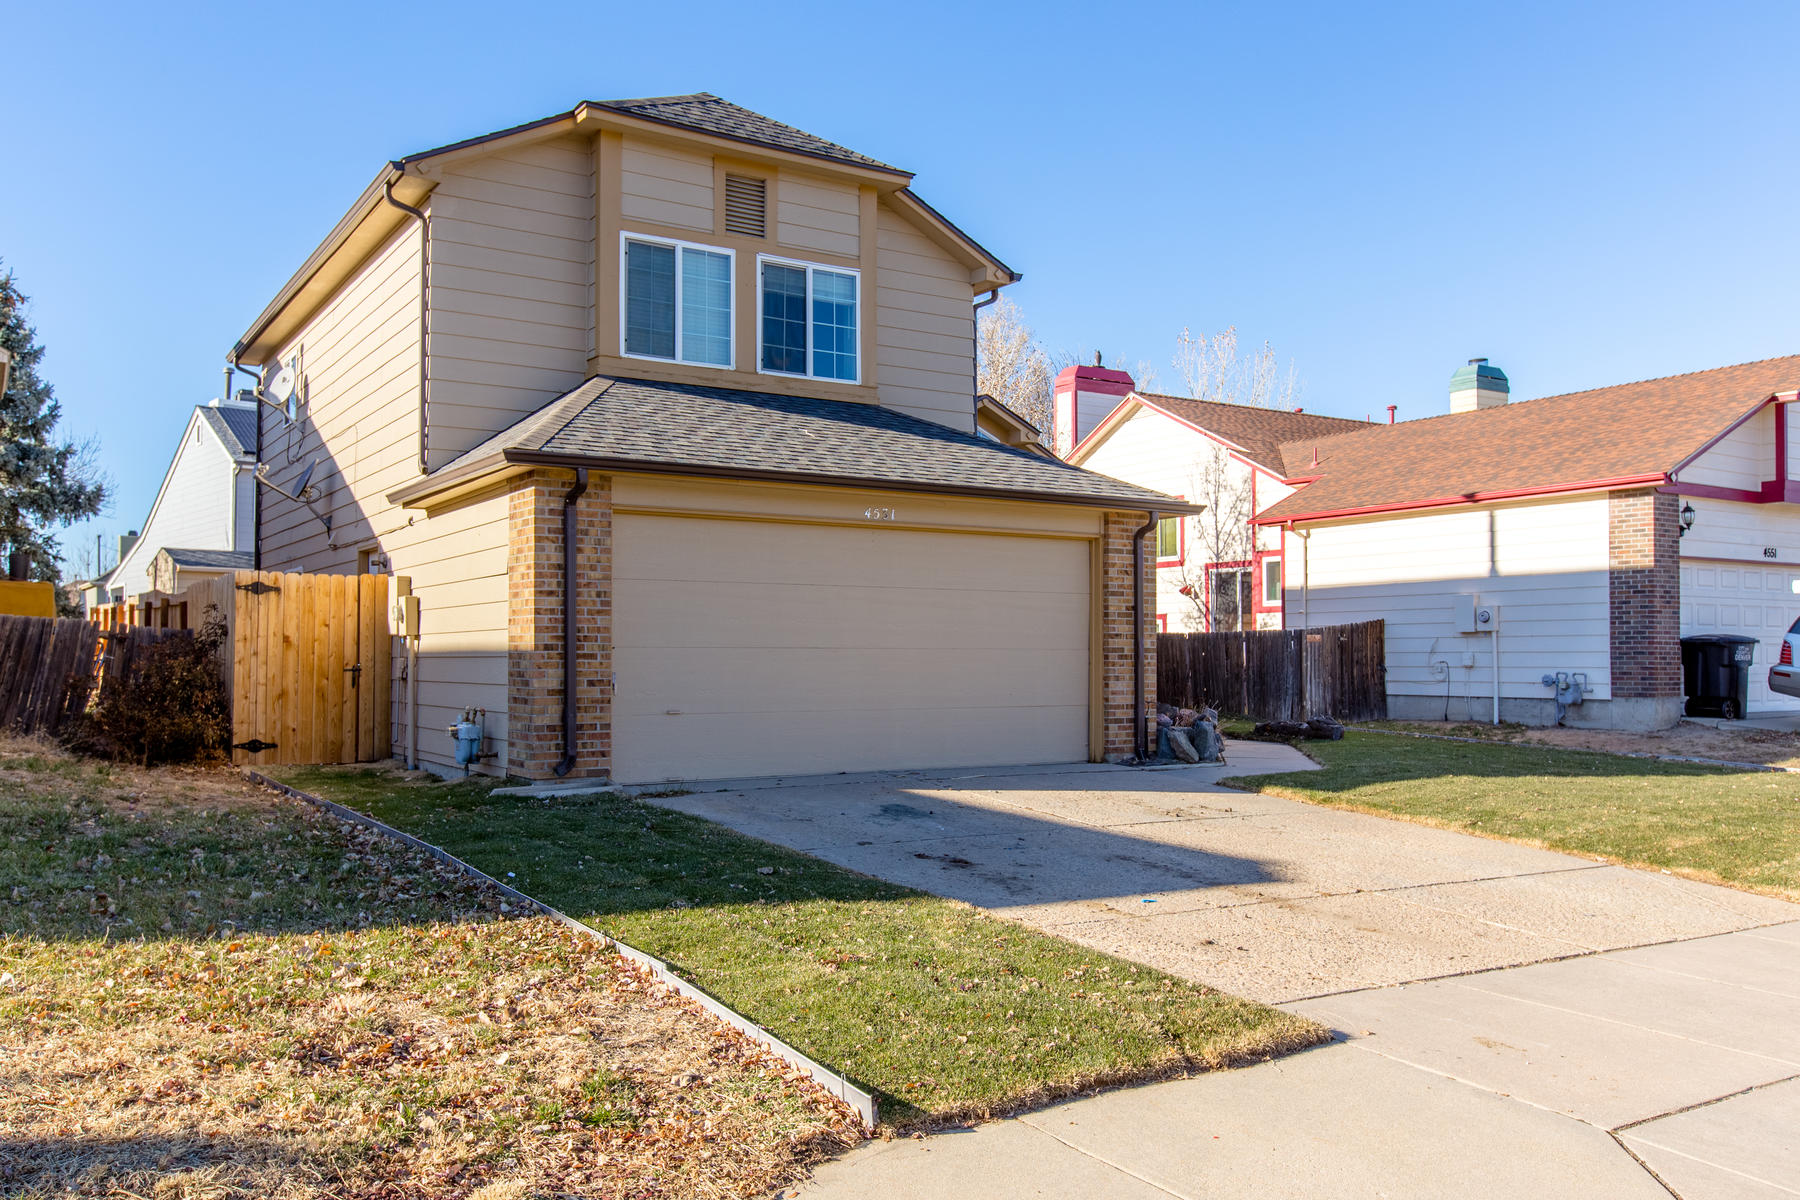 Property for Active at Investor special! 4531 Malaya St Denver, Colorado 80249 United States